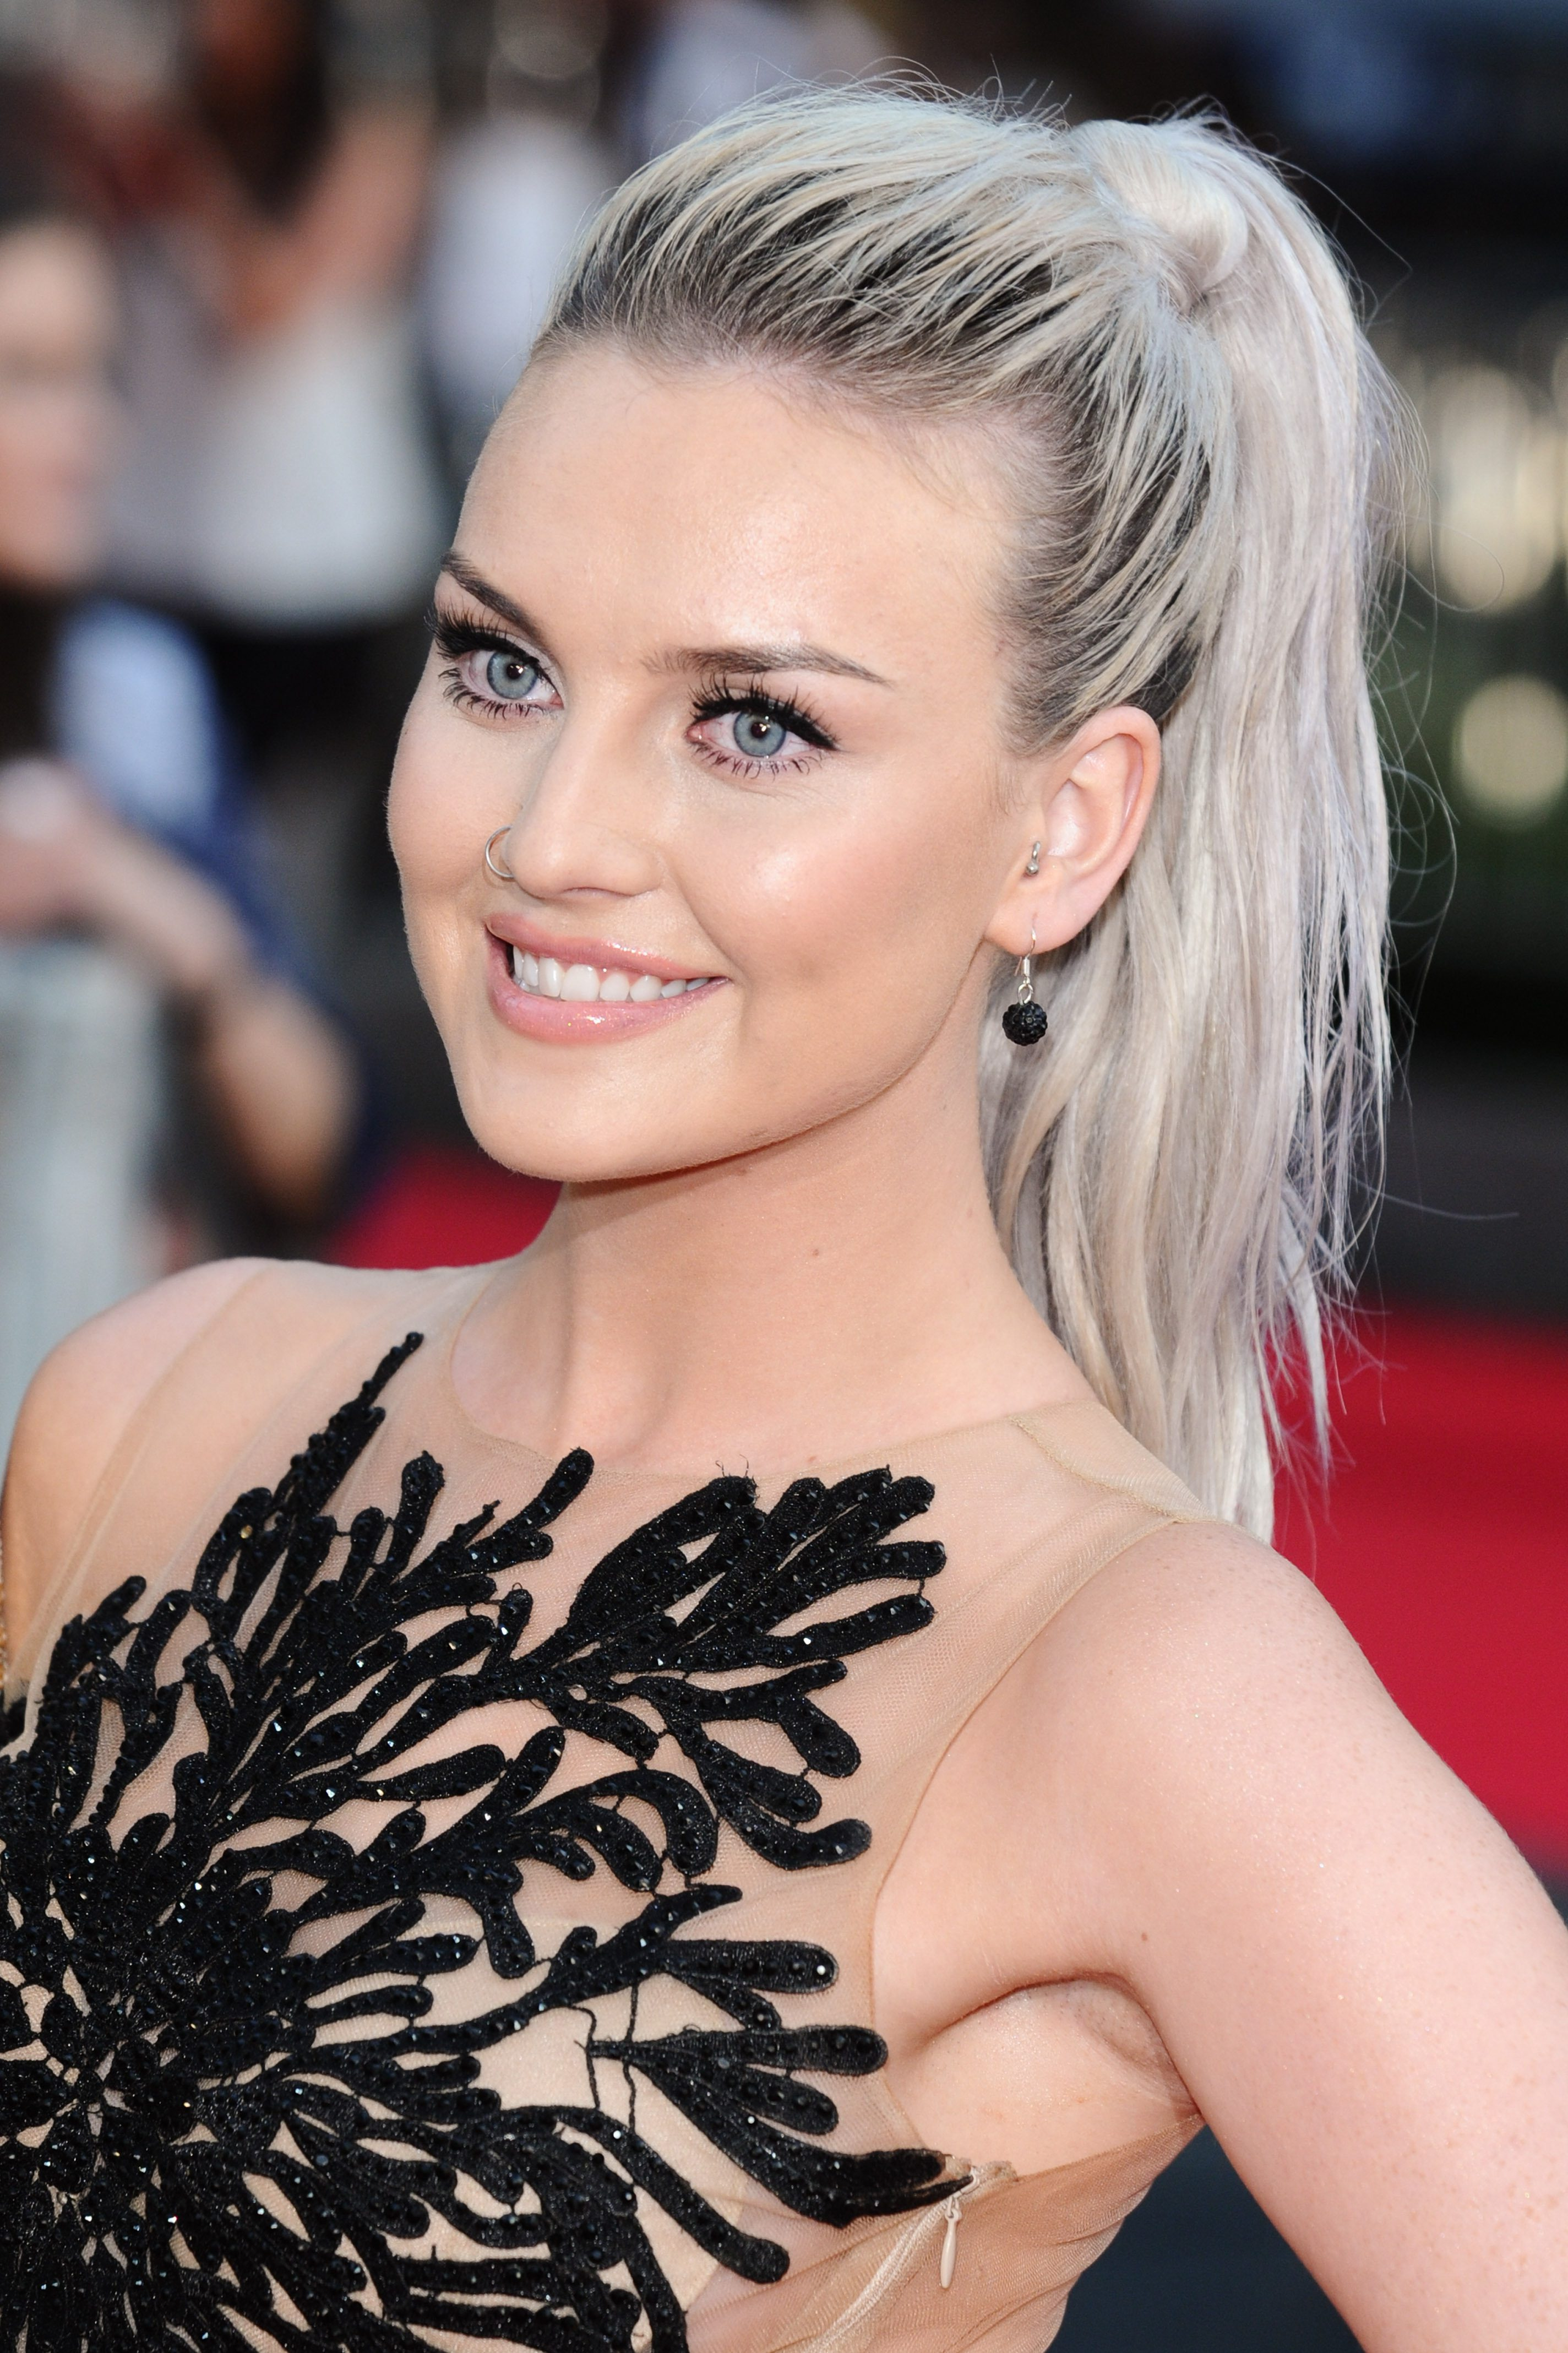 Perrie Edwards' Silver Hair with Dark Roots